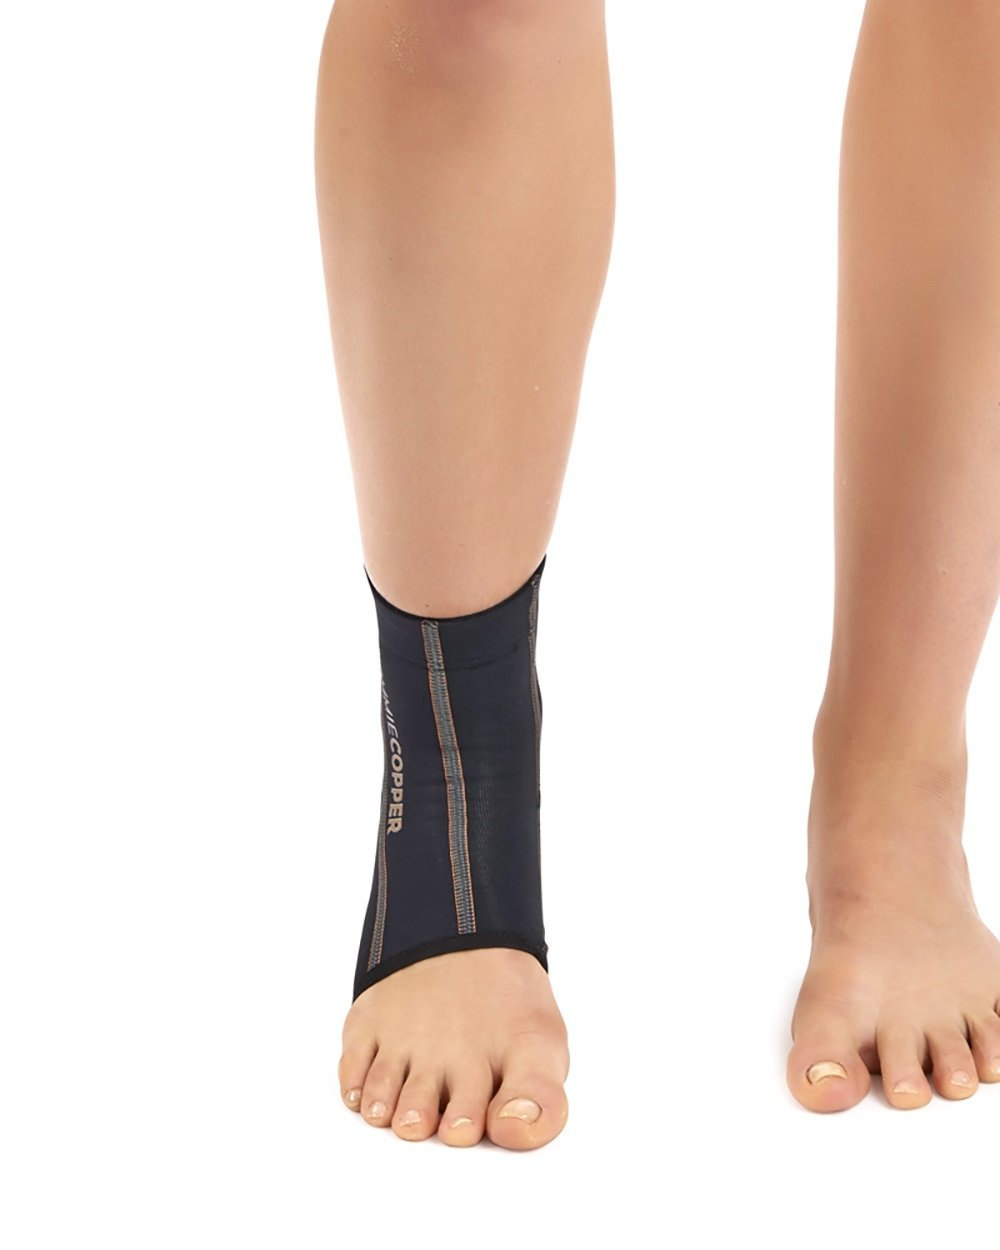 Tommie Copper Women's Performance Ankle Sleeves 2.0, Small, Black